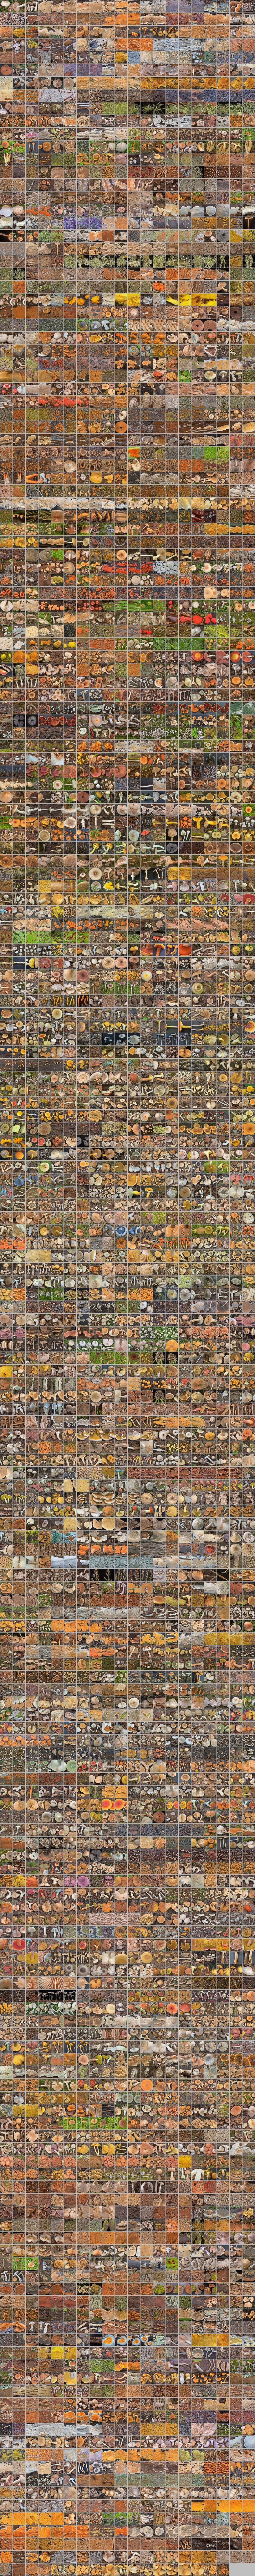 Photomontage of pictures of mushrooms in Russia. Year 2020